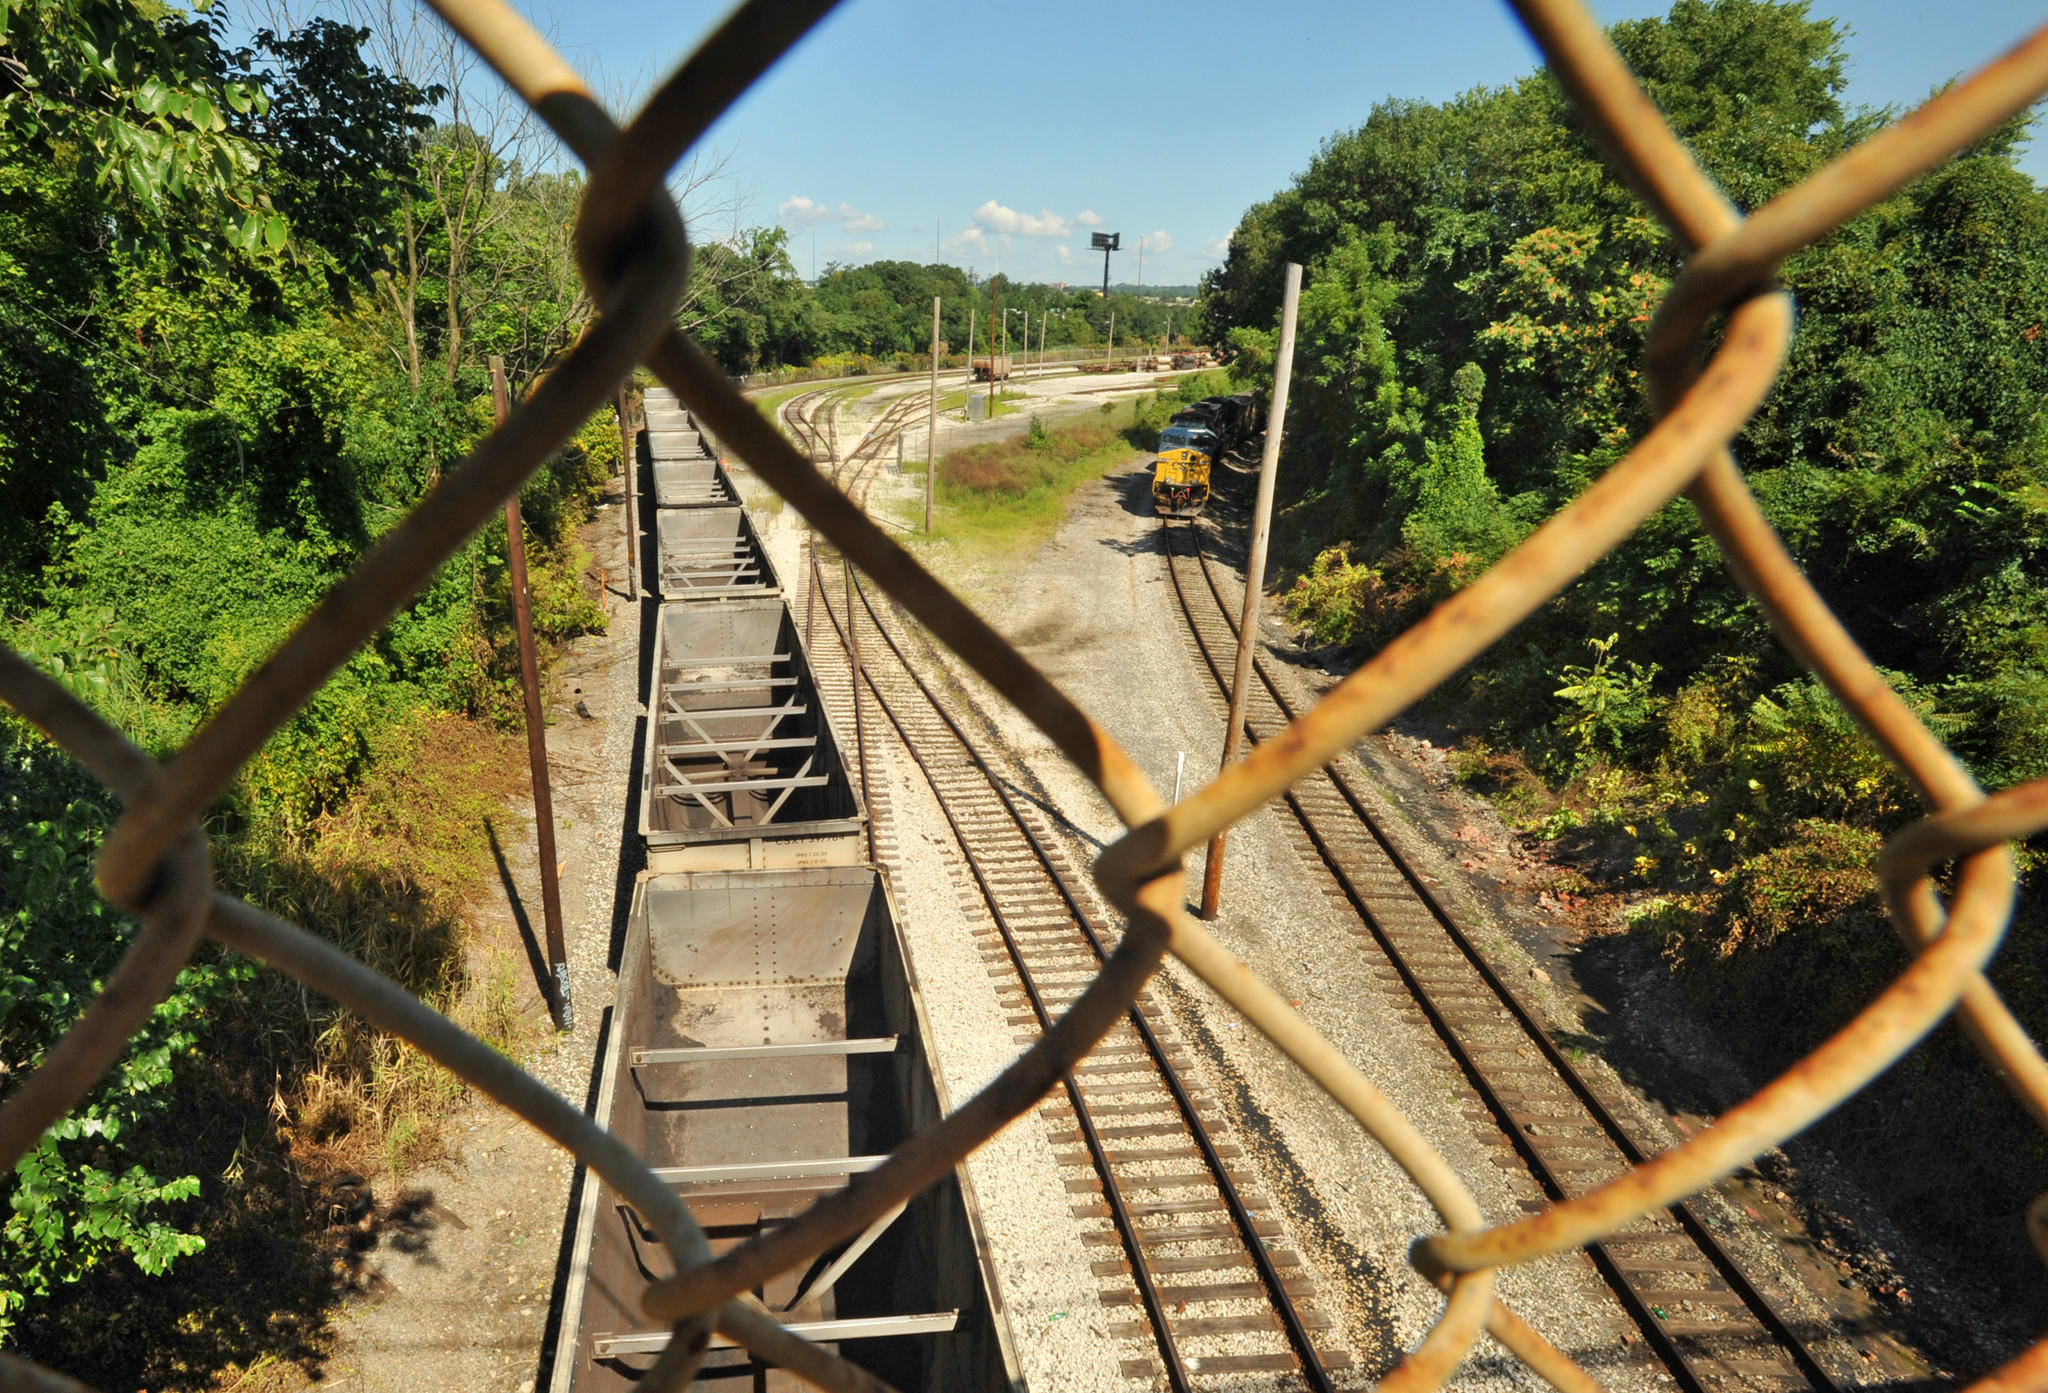 Baltimore, MD - 8/5/13 - md-intermodal-study-p02-davis --view of CSX tracks from the Washington Blvd. bridge in Morrell Park. A study has just been released about the health impacts of the intermodal in Morrell Park. Amy Davis/ Baltimore Sun Staff Photographer - #4471